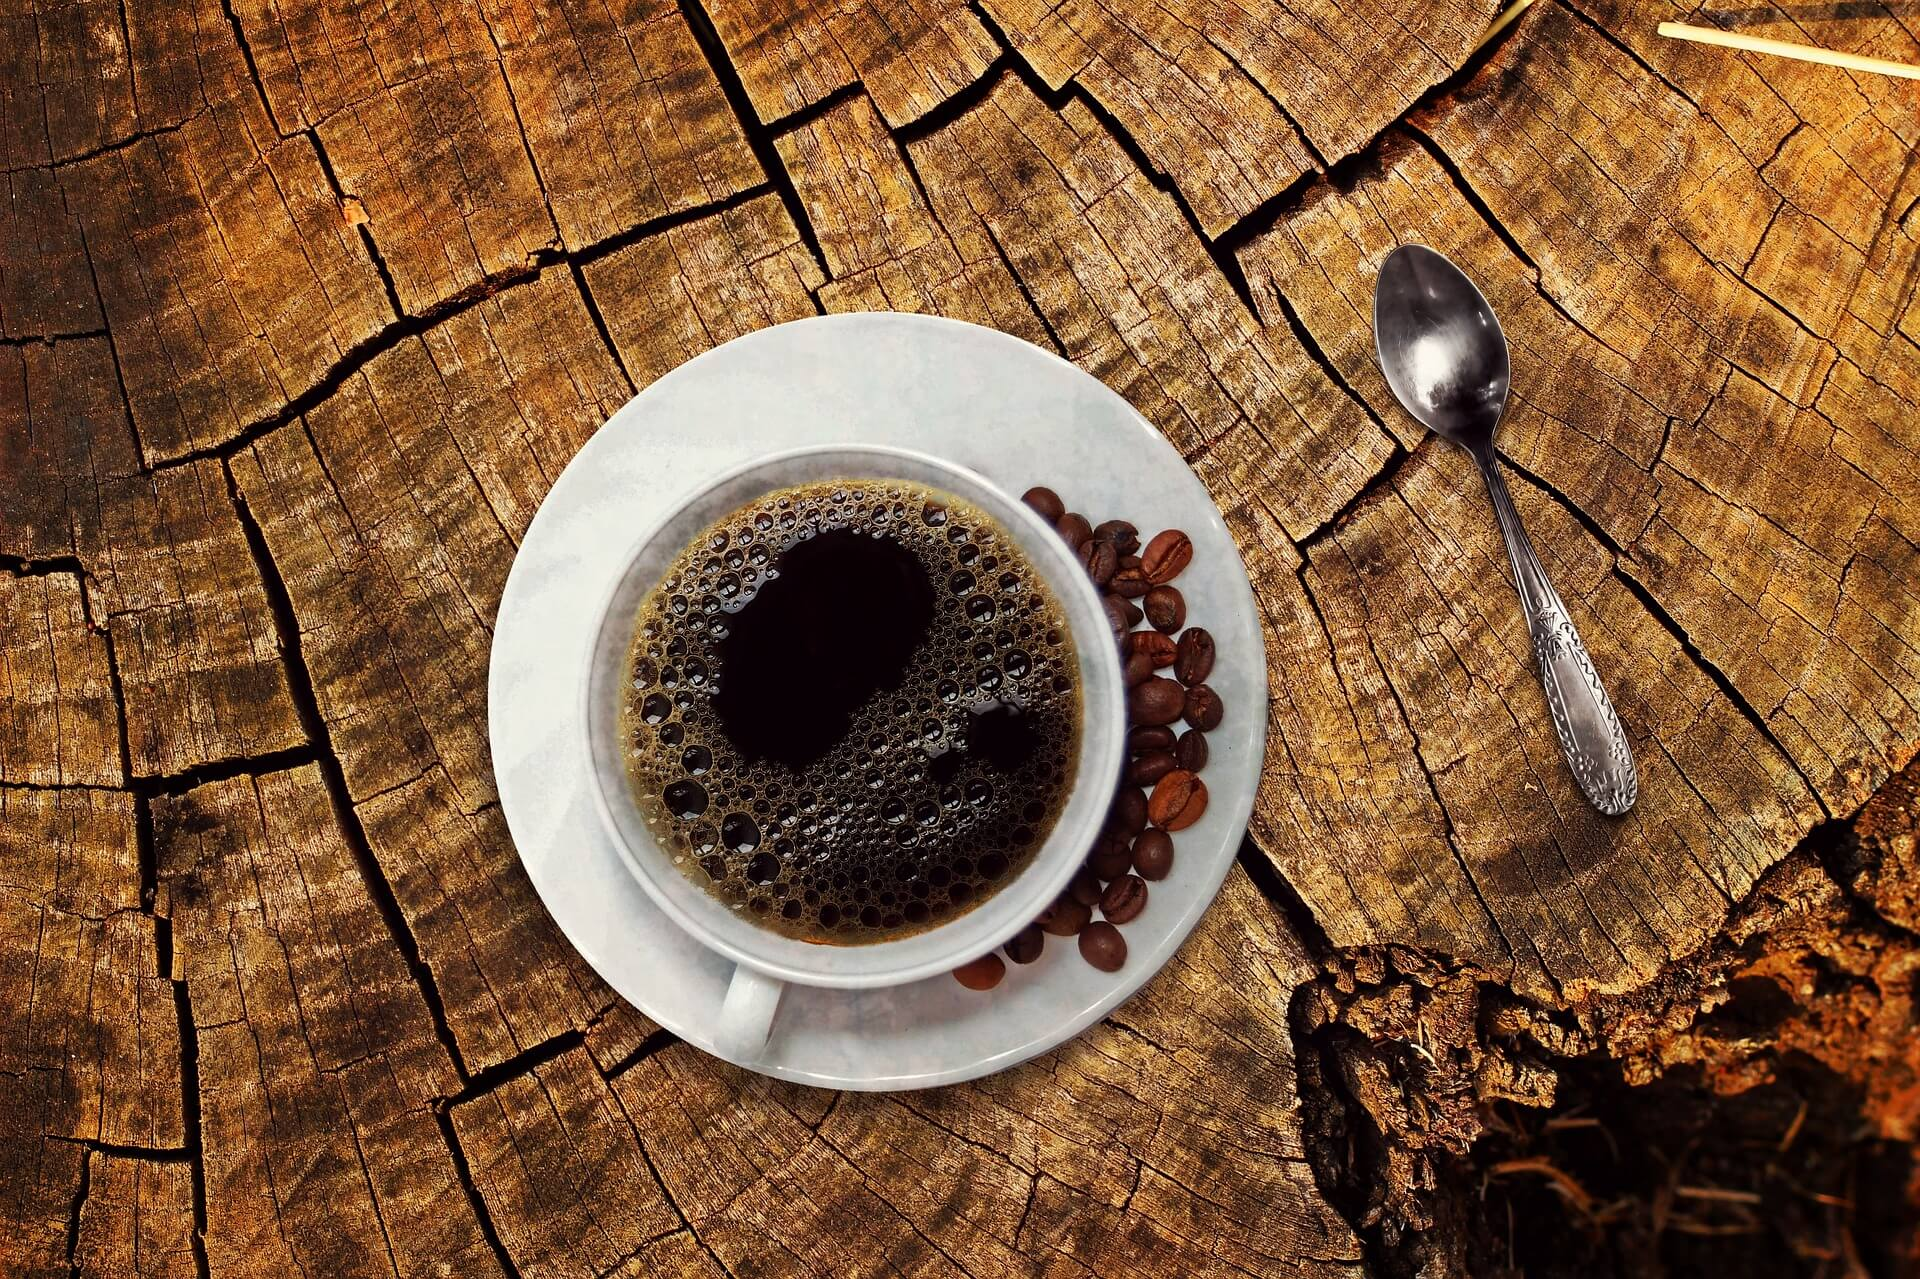 Coffee, one of Chiapas main exports